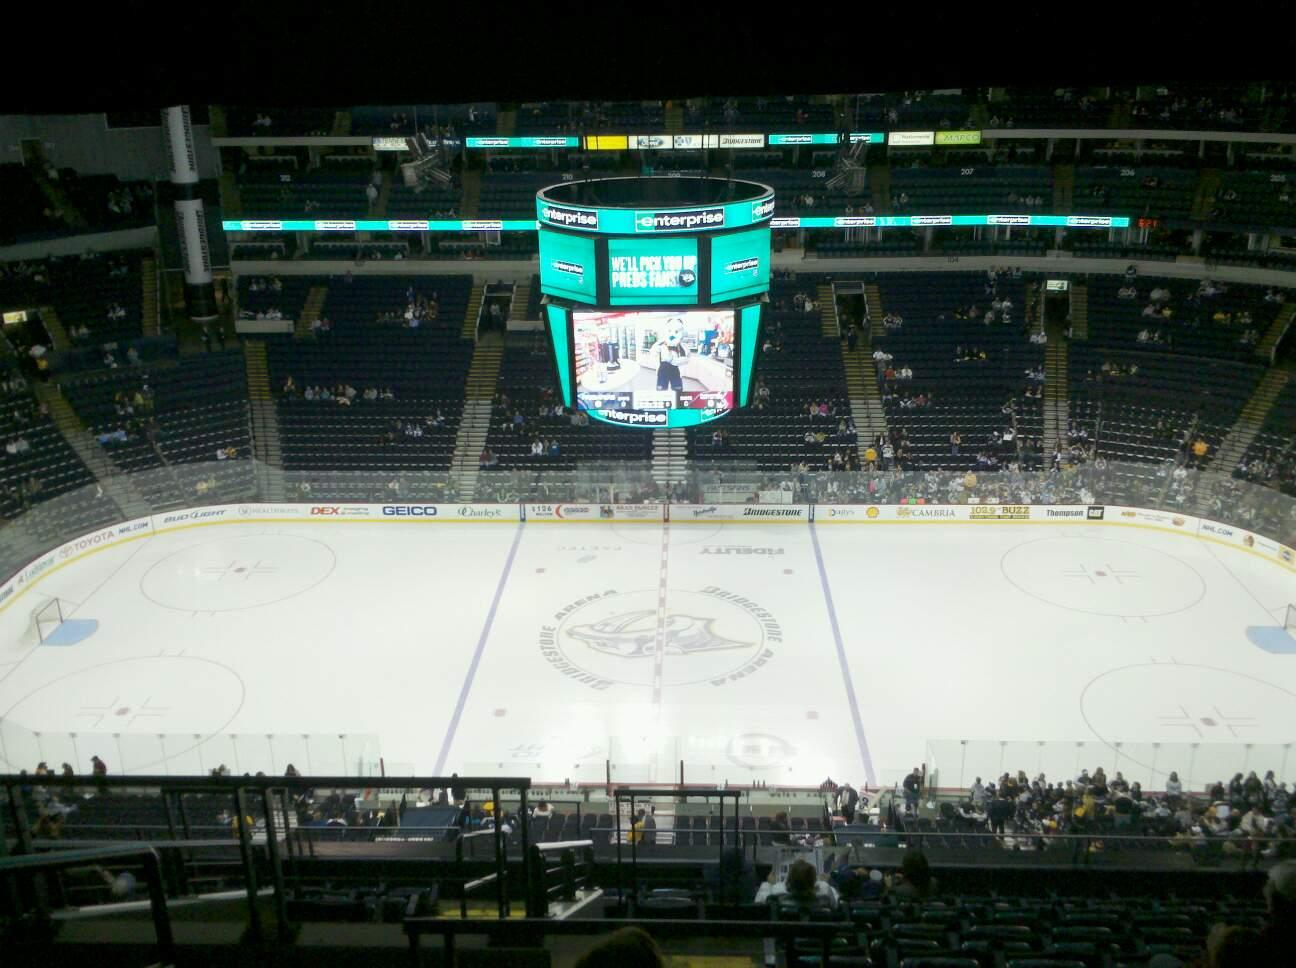 Bridgestone Arena Section 326 Row M Seat 19